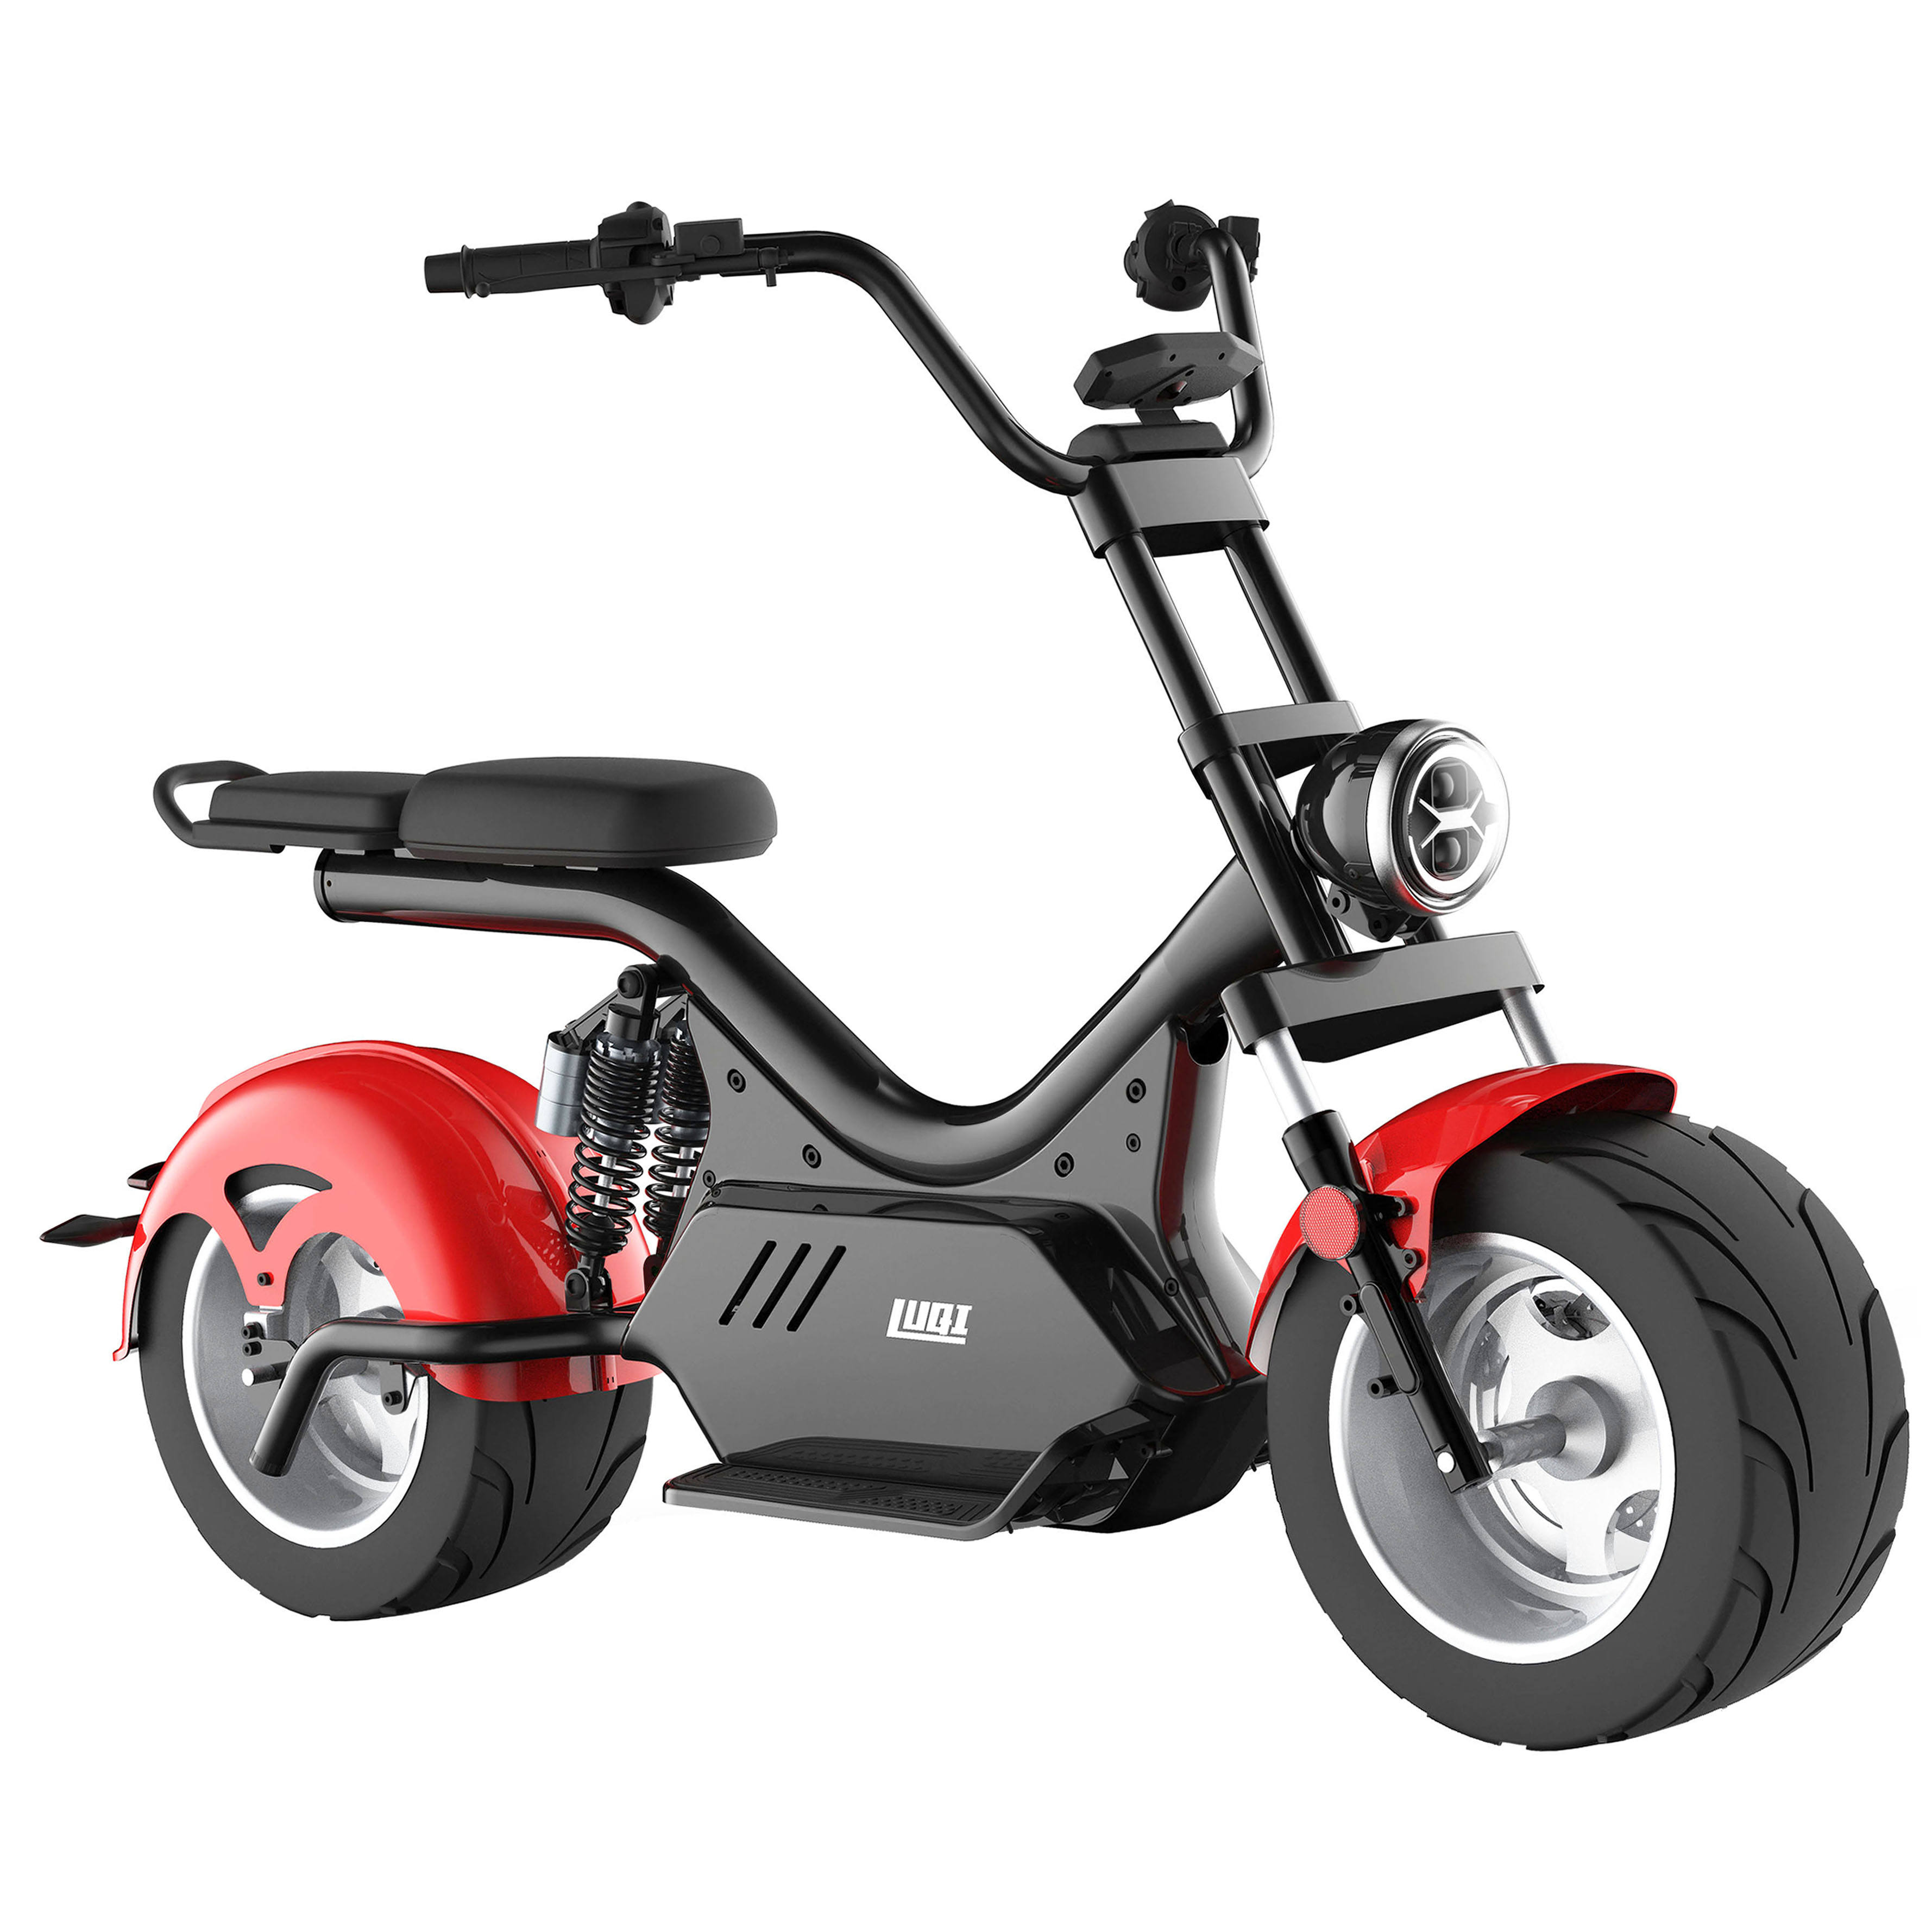 High speed 3000W city coco 80km/h speed motorcycle citycoco 2 wheels